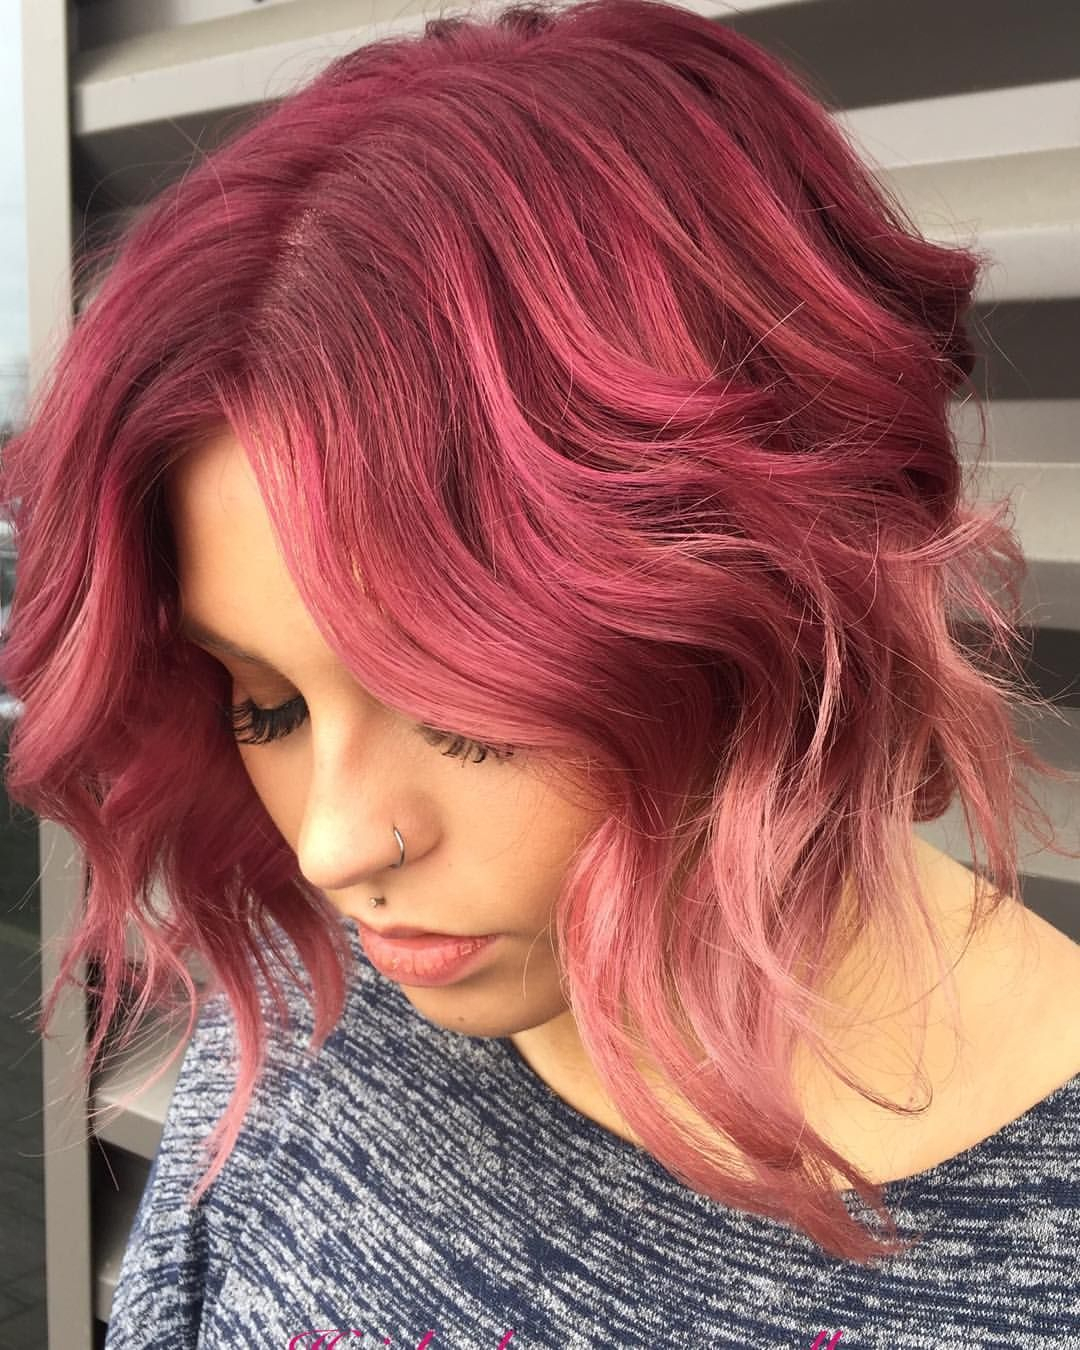 10 Cute Fun Red Hair Color Ideas red violet ombre hair new hair color ideas hair mom haircuts 2020